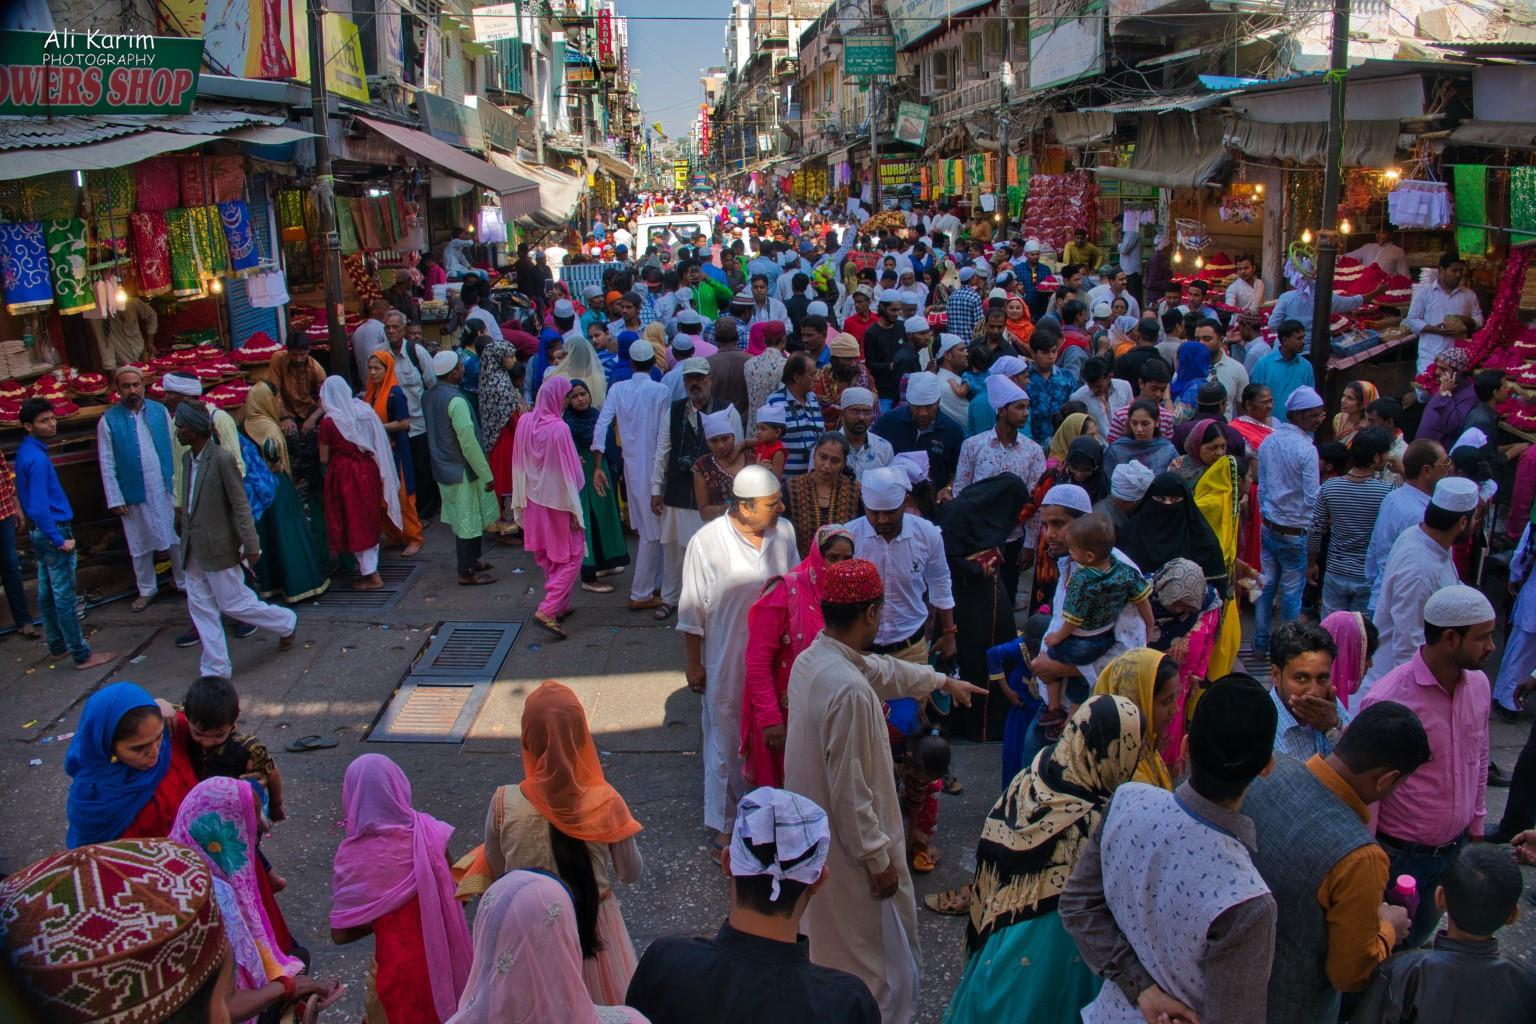 Pushkar, Rajasthan Busy & colorful bazaar leading to the Dargah